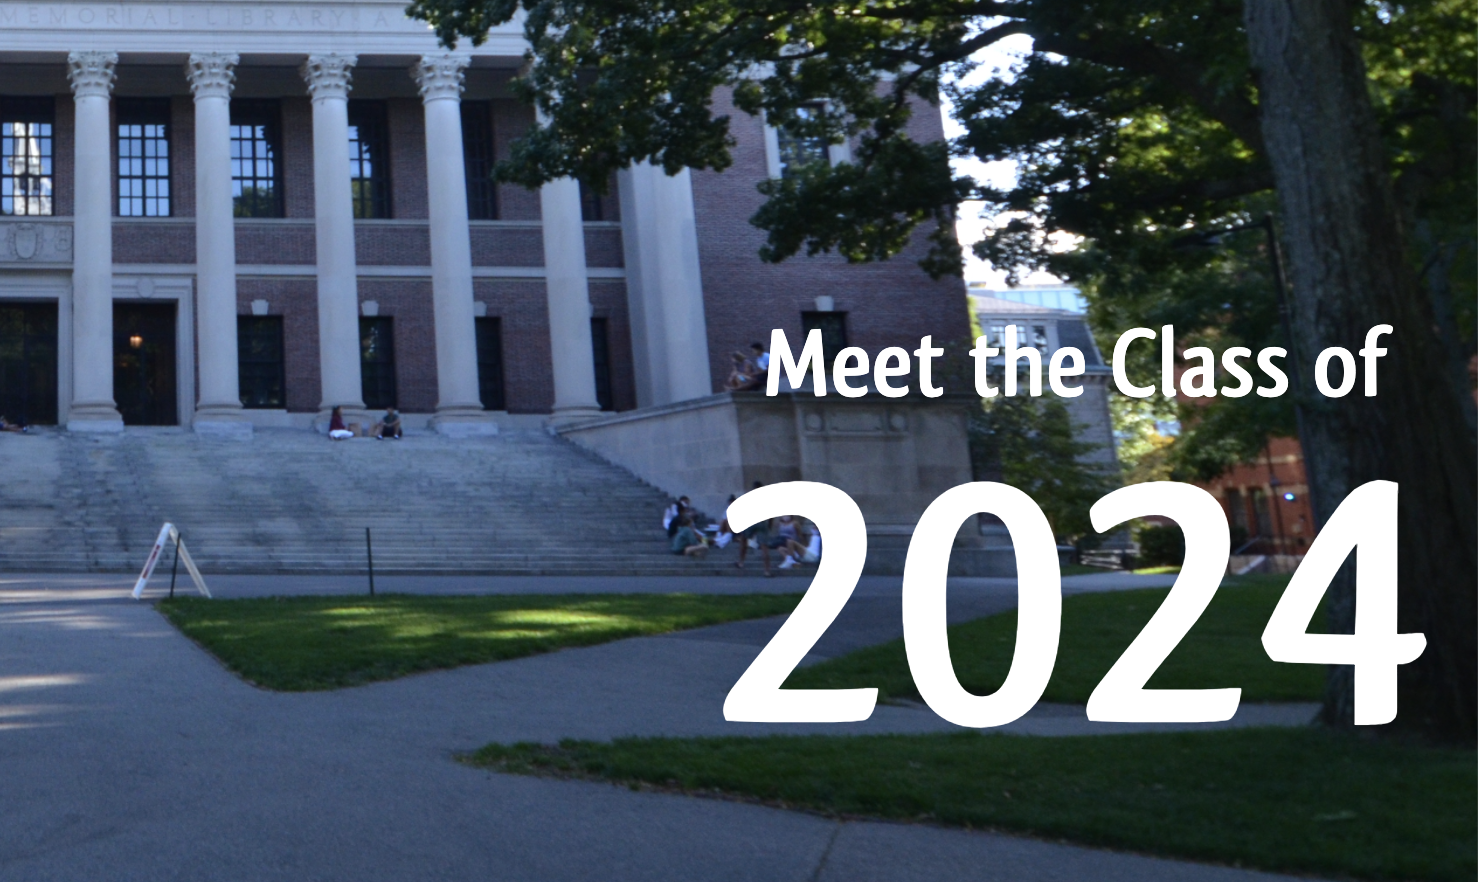 snapshot of crimson article top page for the By the Numbers: Meet the Class of 2024